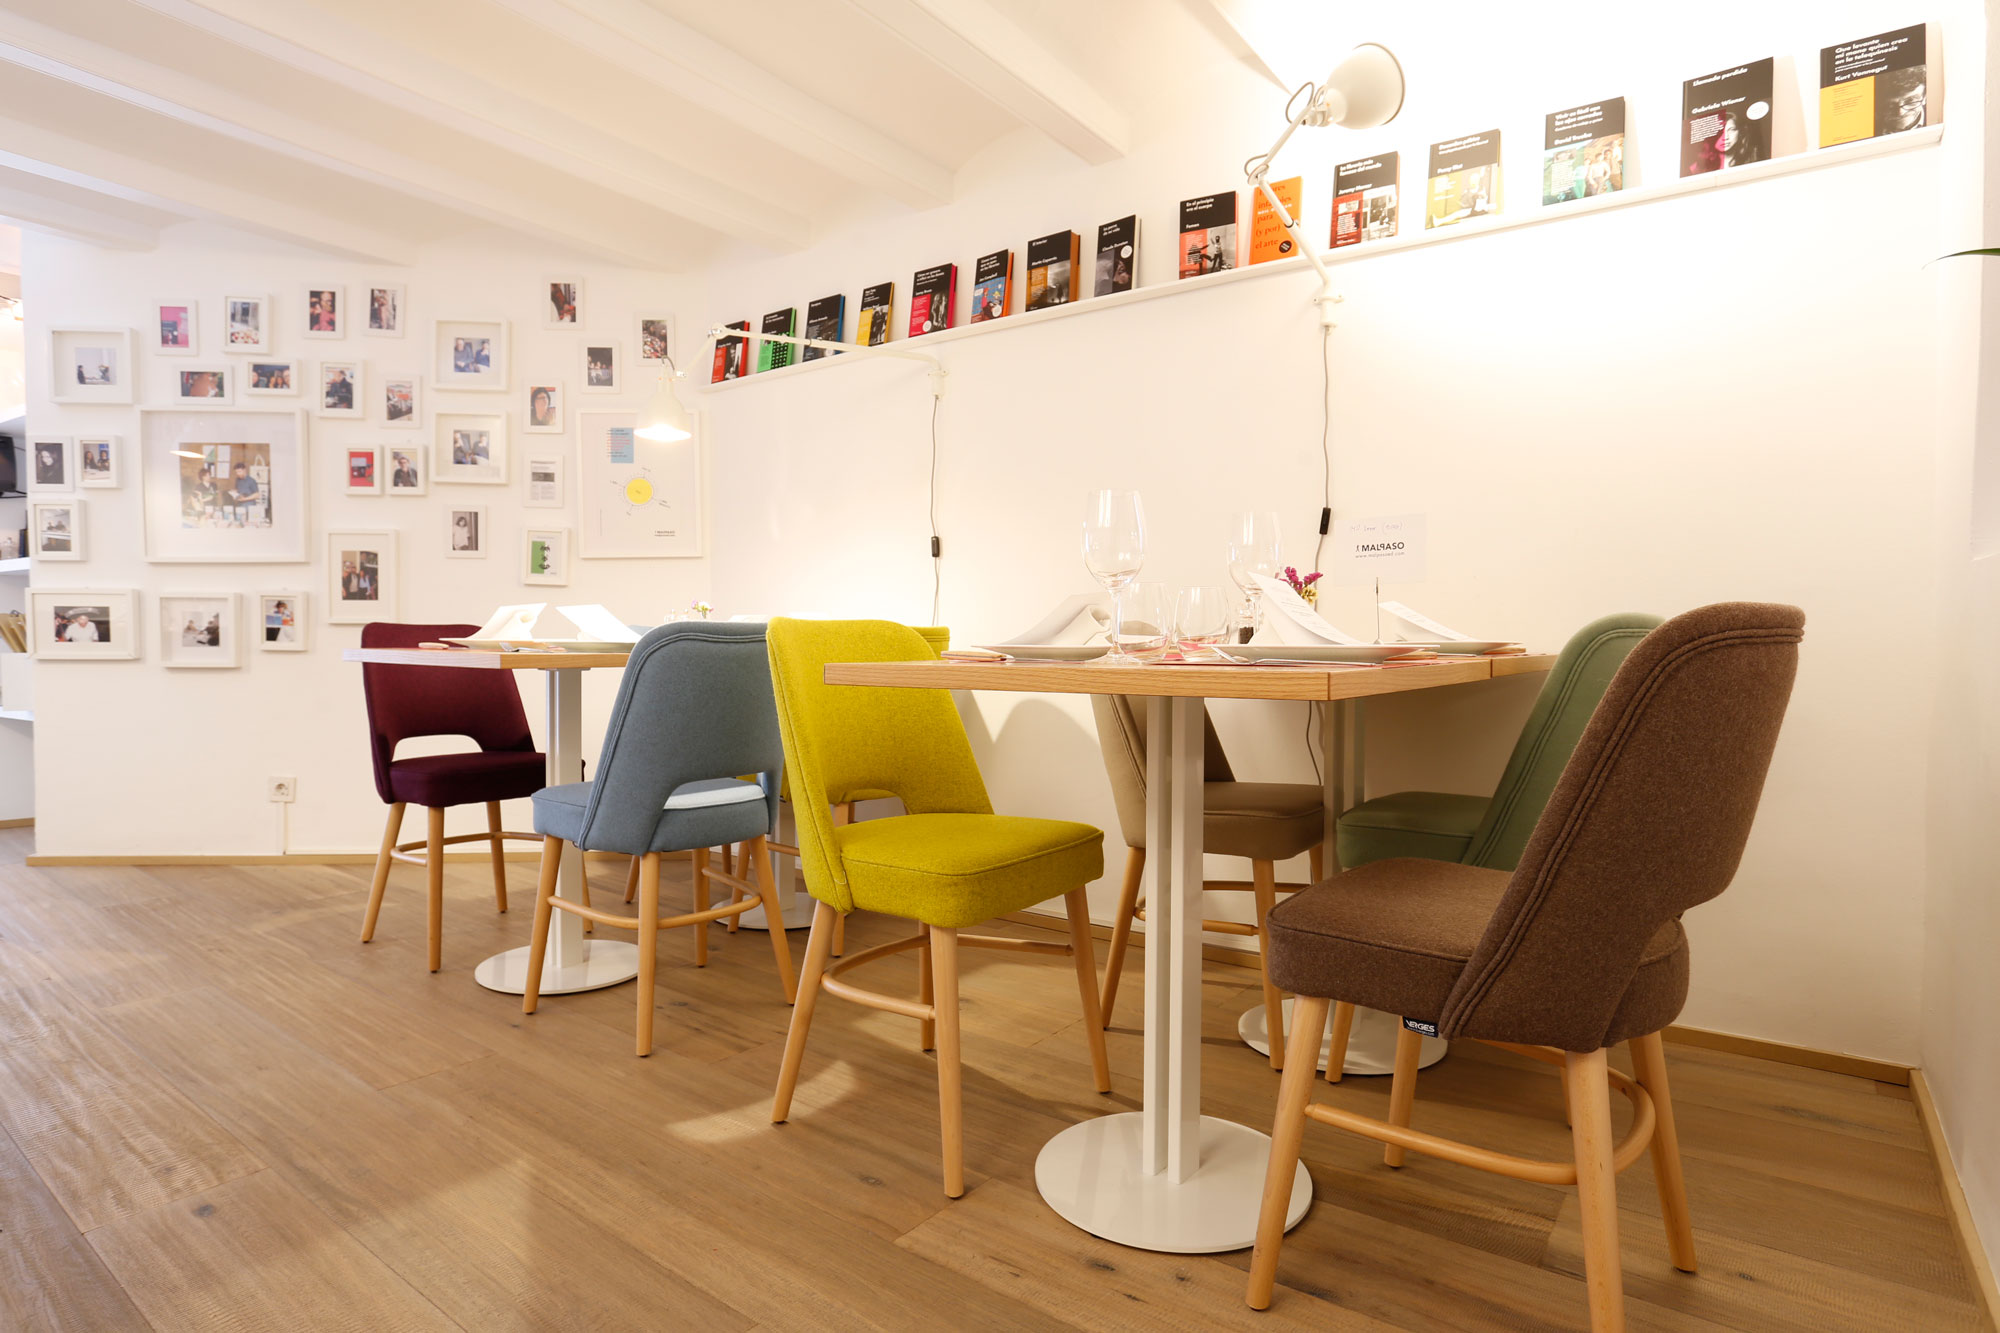 chaises-et-tables-Verges-par-Malpaso-restaurant